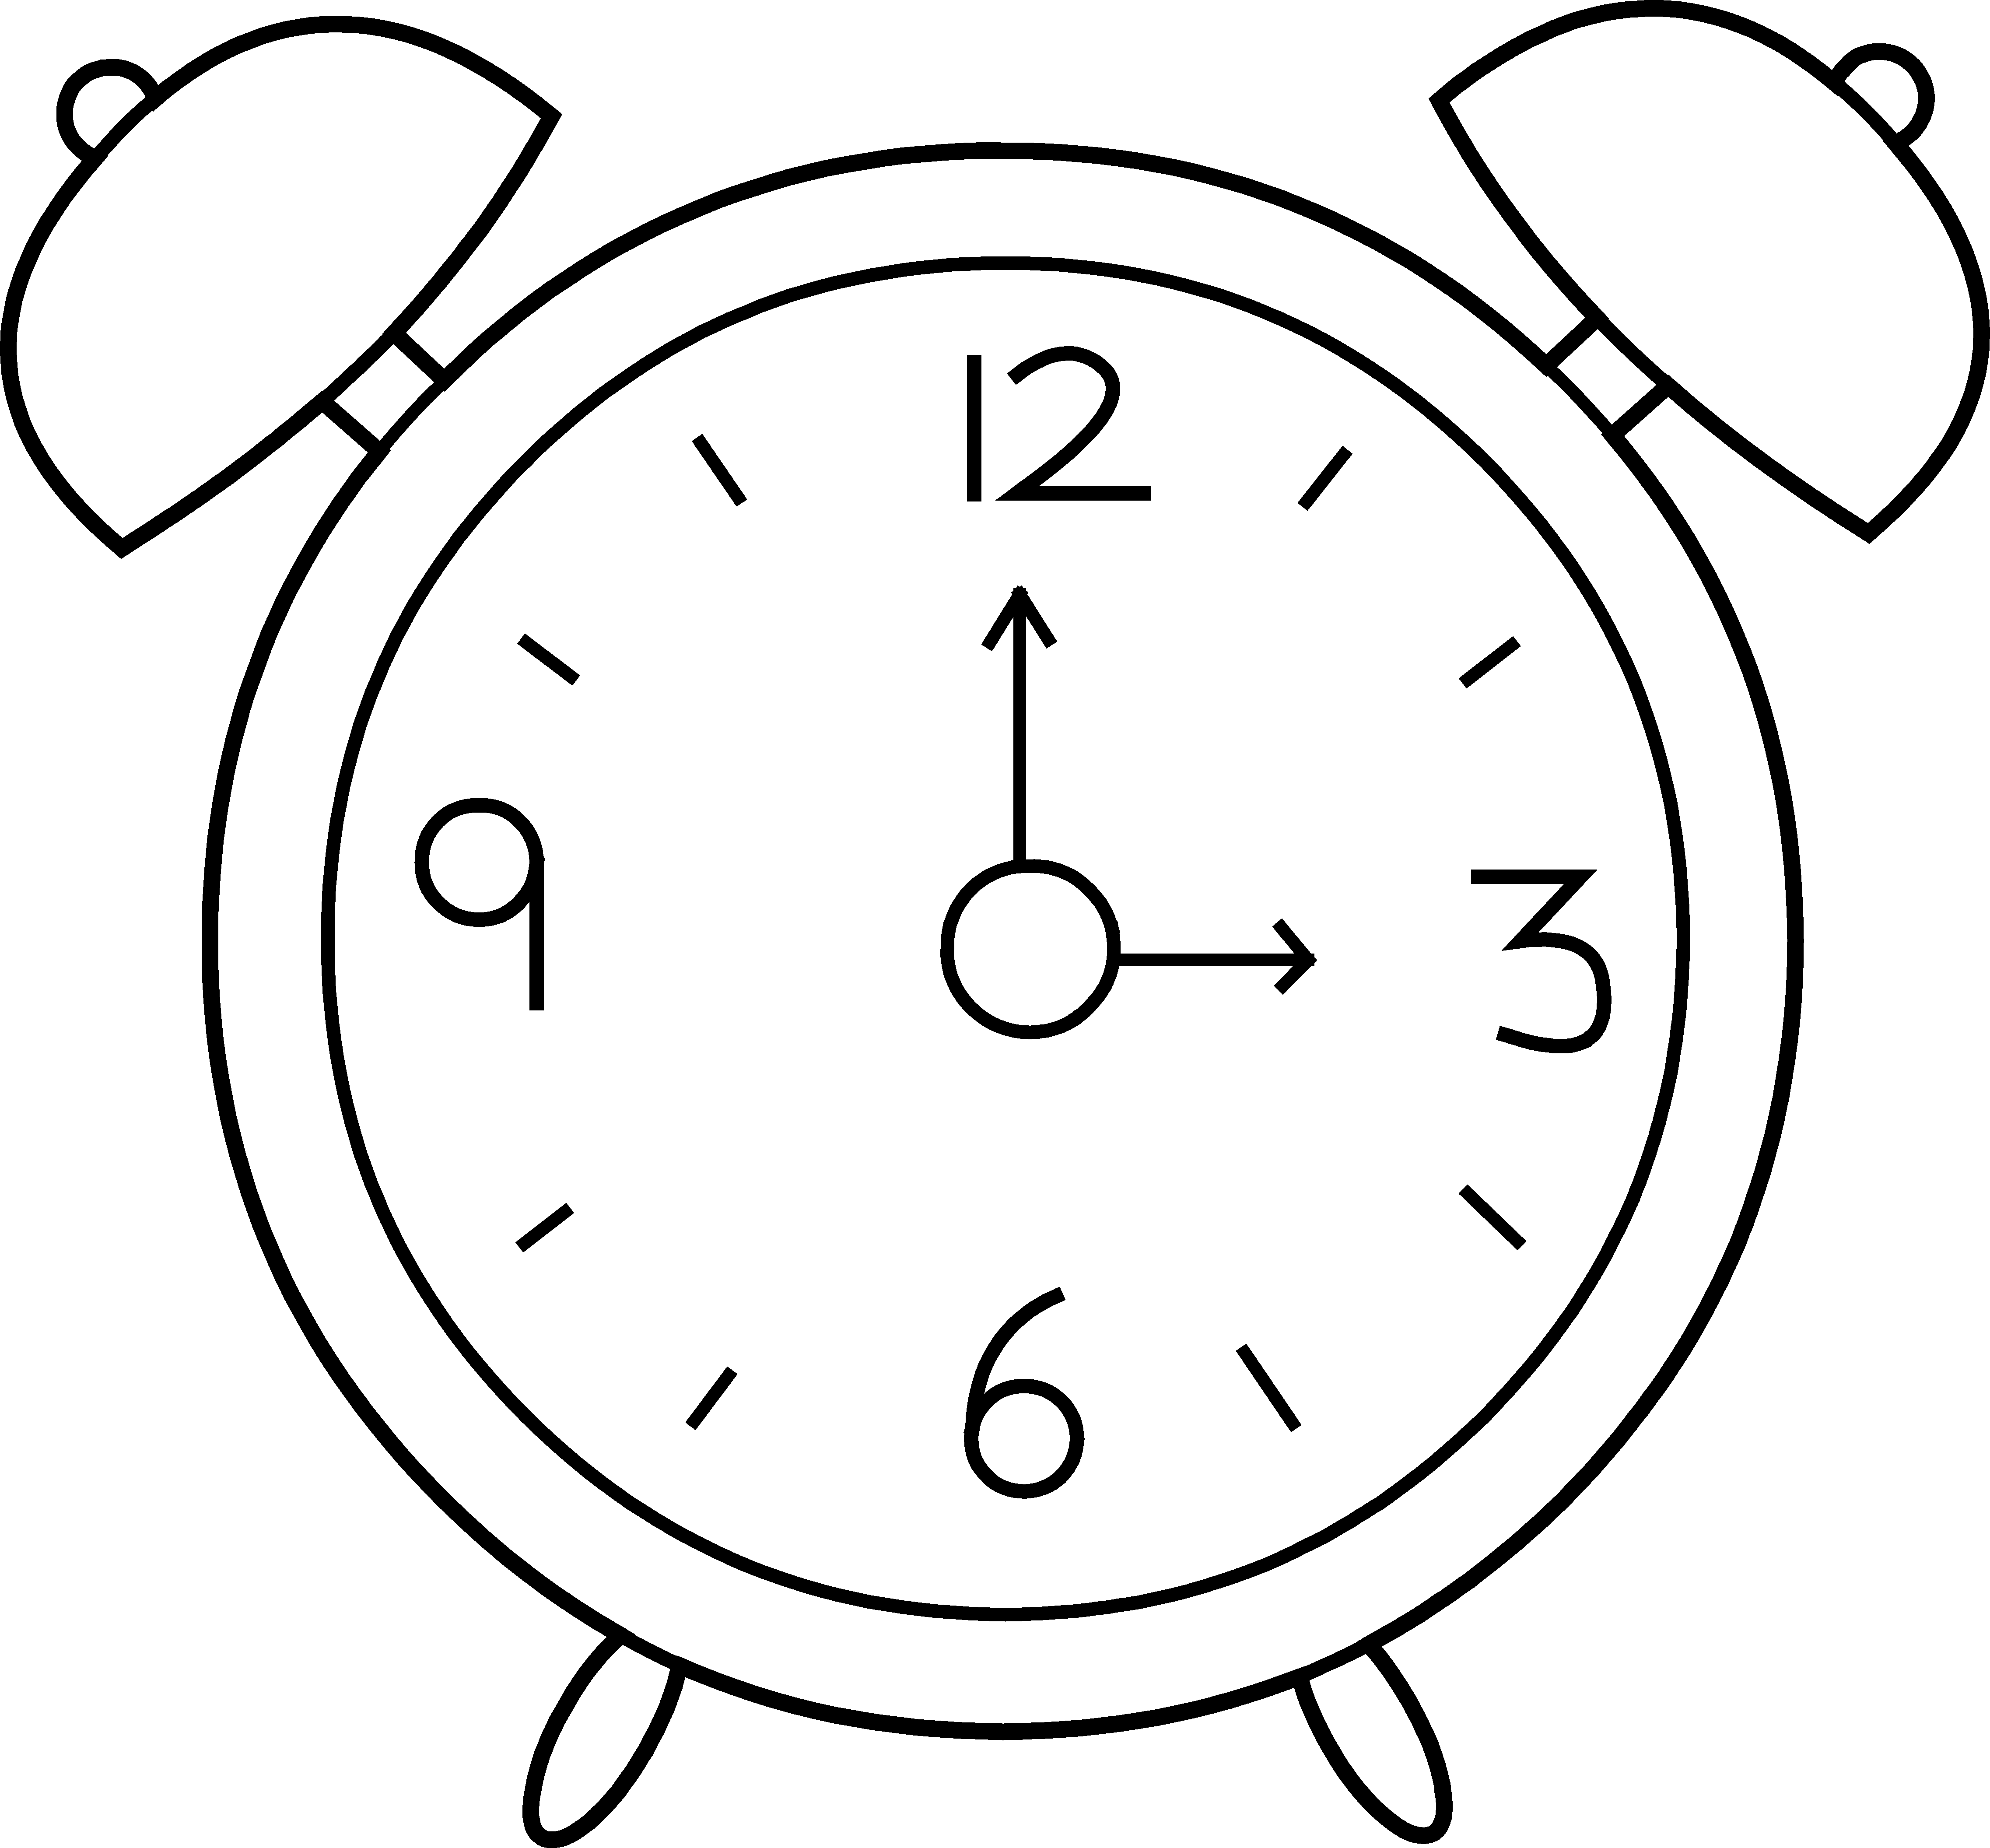 Alarm clipart cartoon. Of people setting their